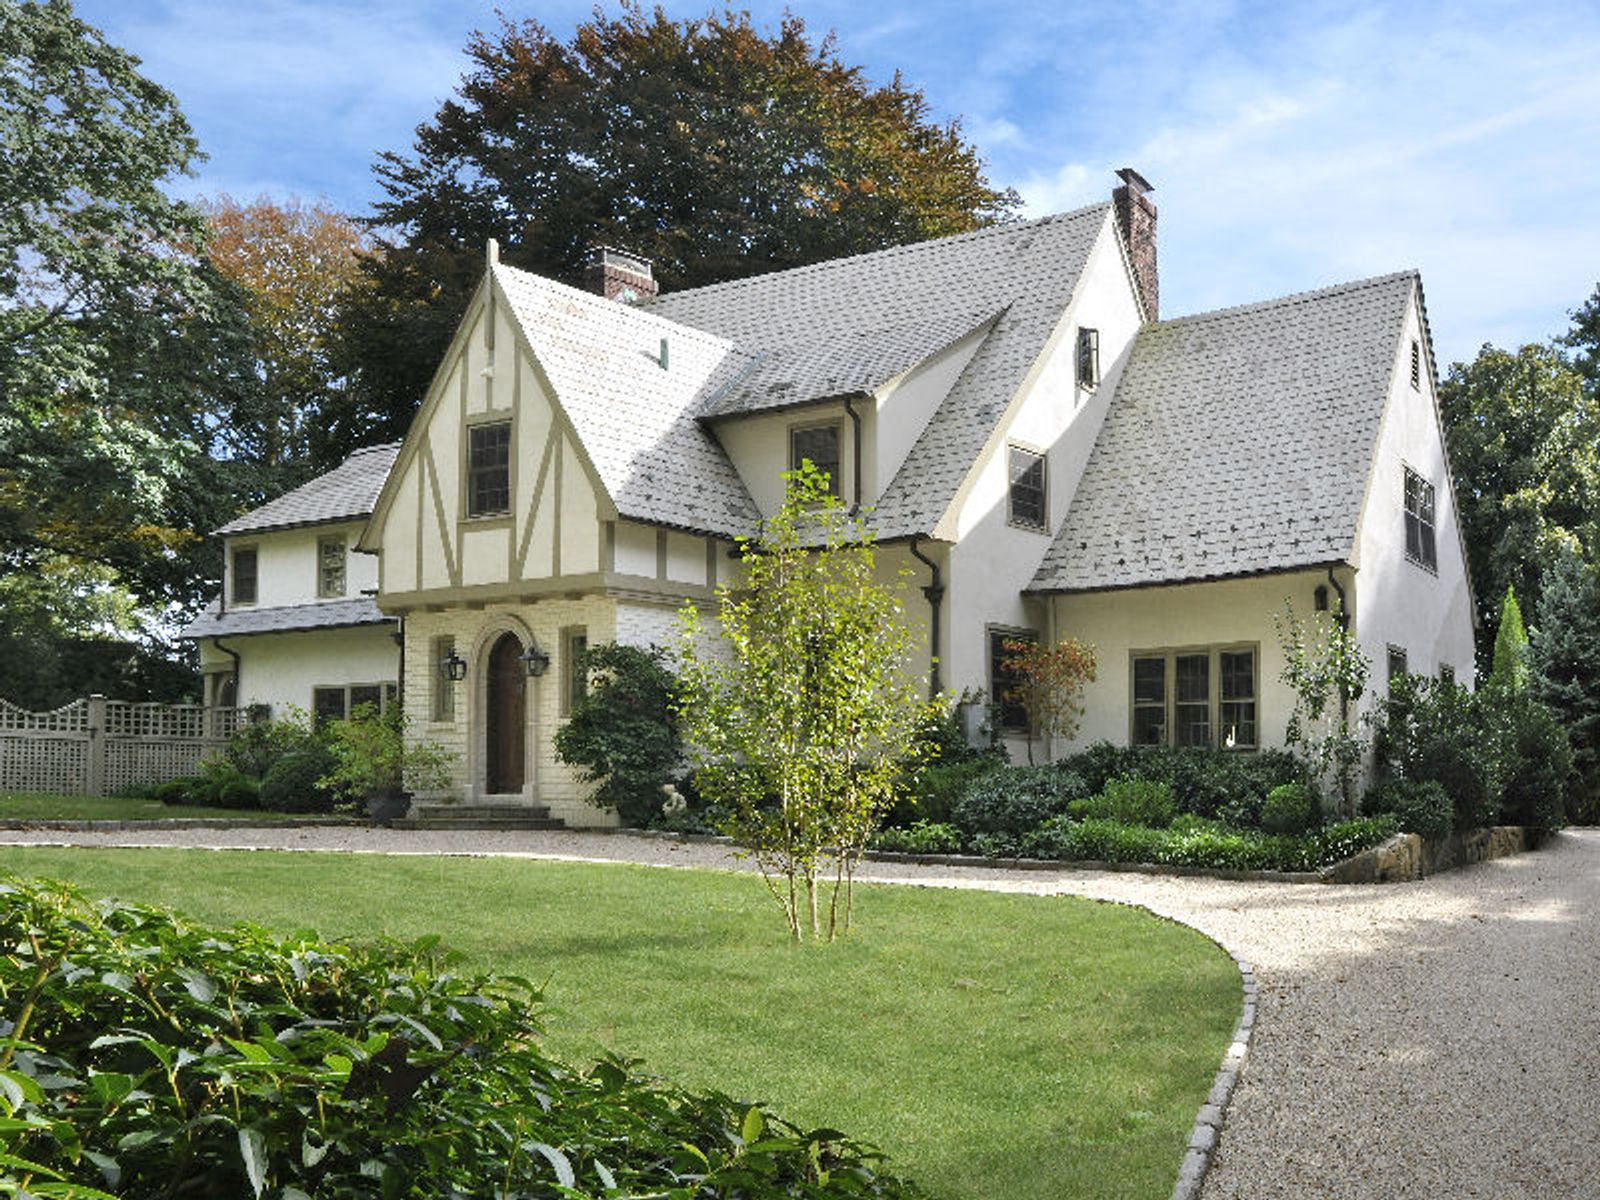 Pristine Home in Private Association, Greenwich CT Single Family Home - Greenwich Real Estate